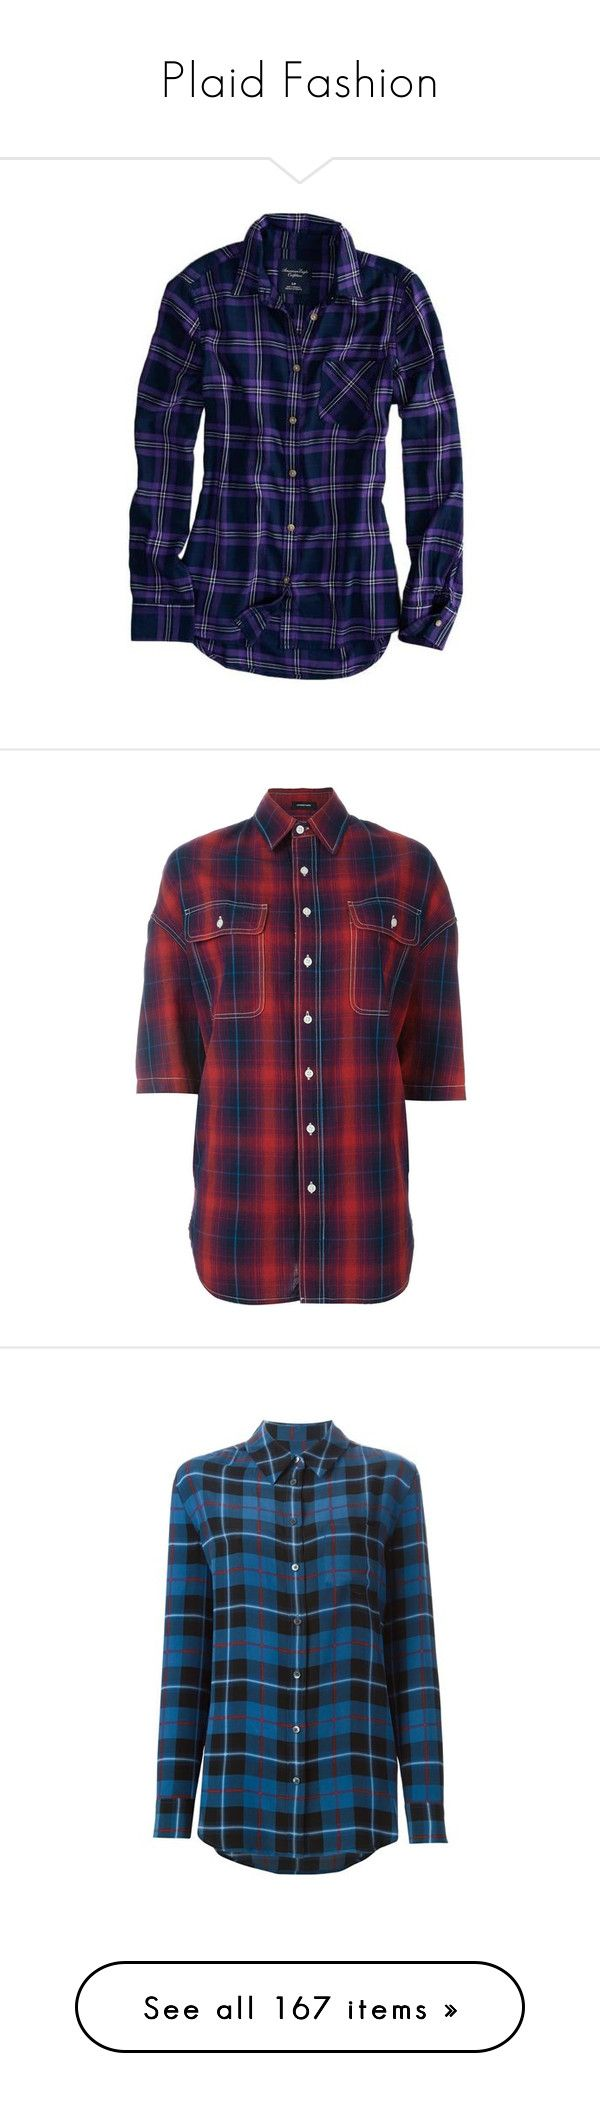 """Plaid Fashion"" by pinky-dee ❤ liked on Polyvore featuring tops, button down shirt, button up shirts, purple plaid shirt, long sleeve button down shirts, blue button up shirt, red, oversized plaid shirt, red plaid top and oversized linen shirt"